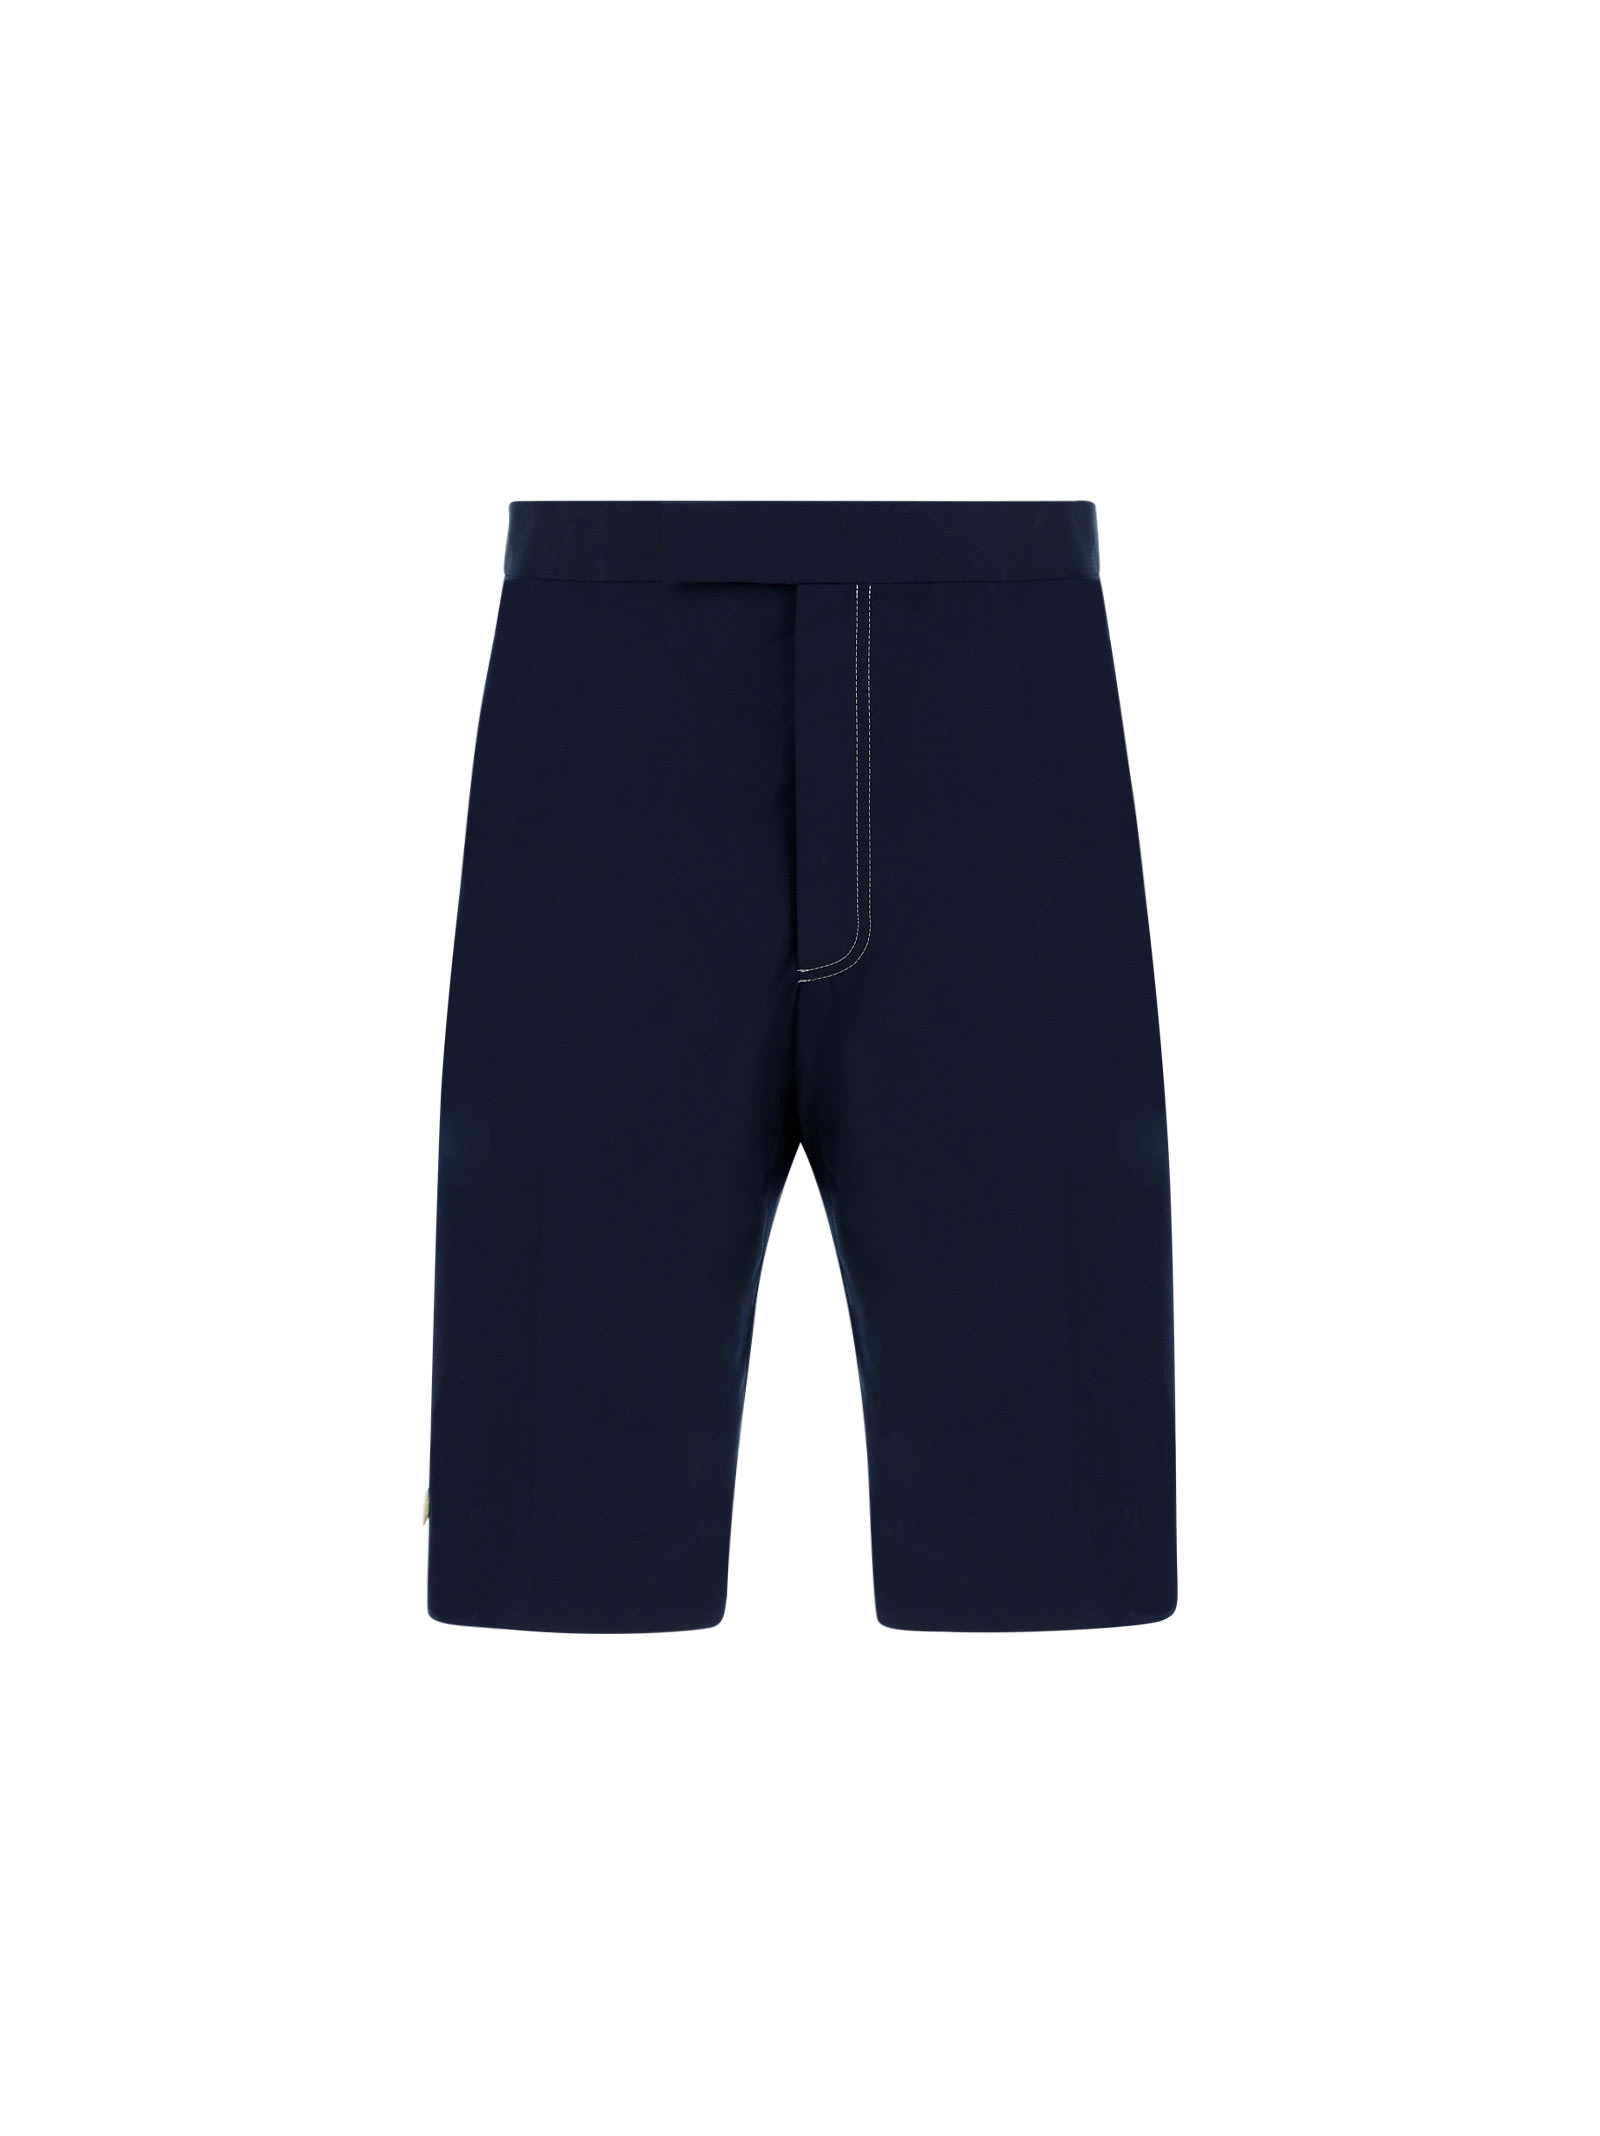 Thom Browne Cottons SHORTS BY THOM BROWNE